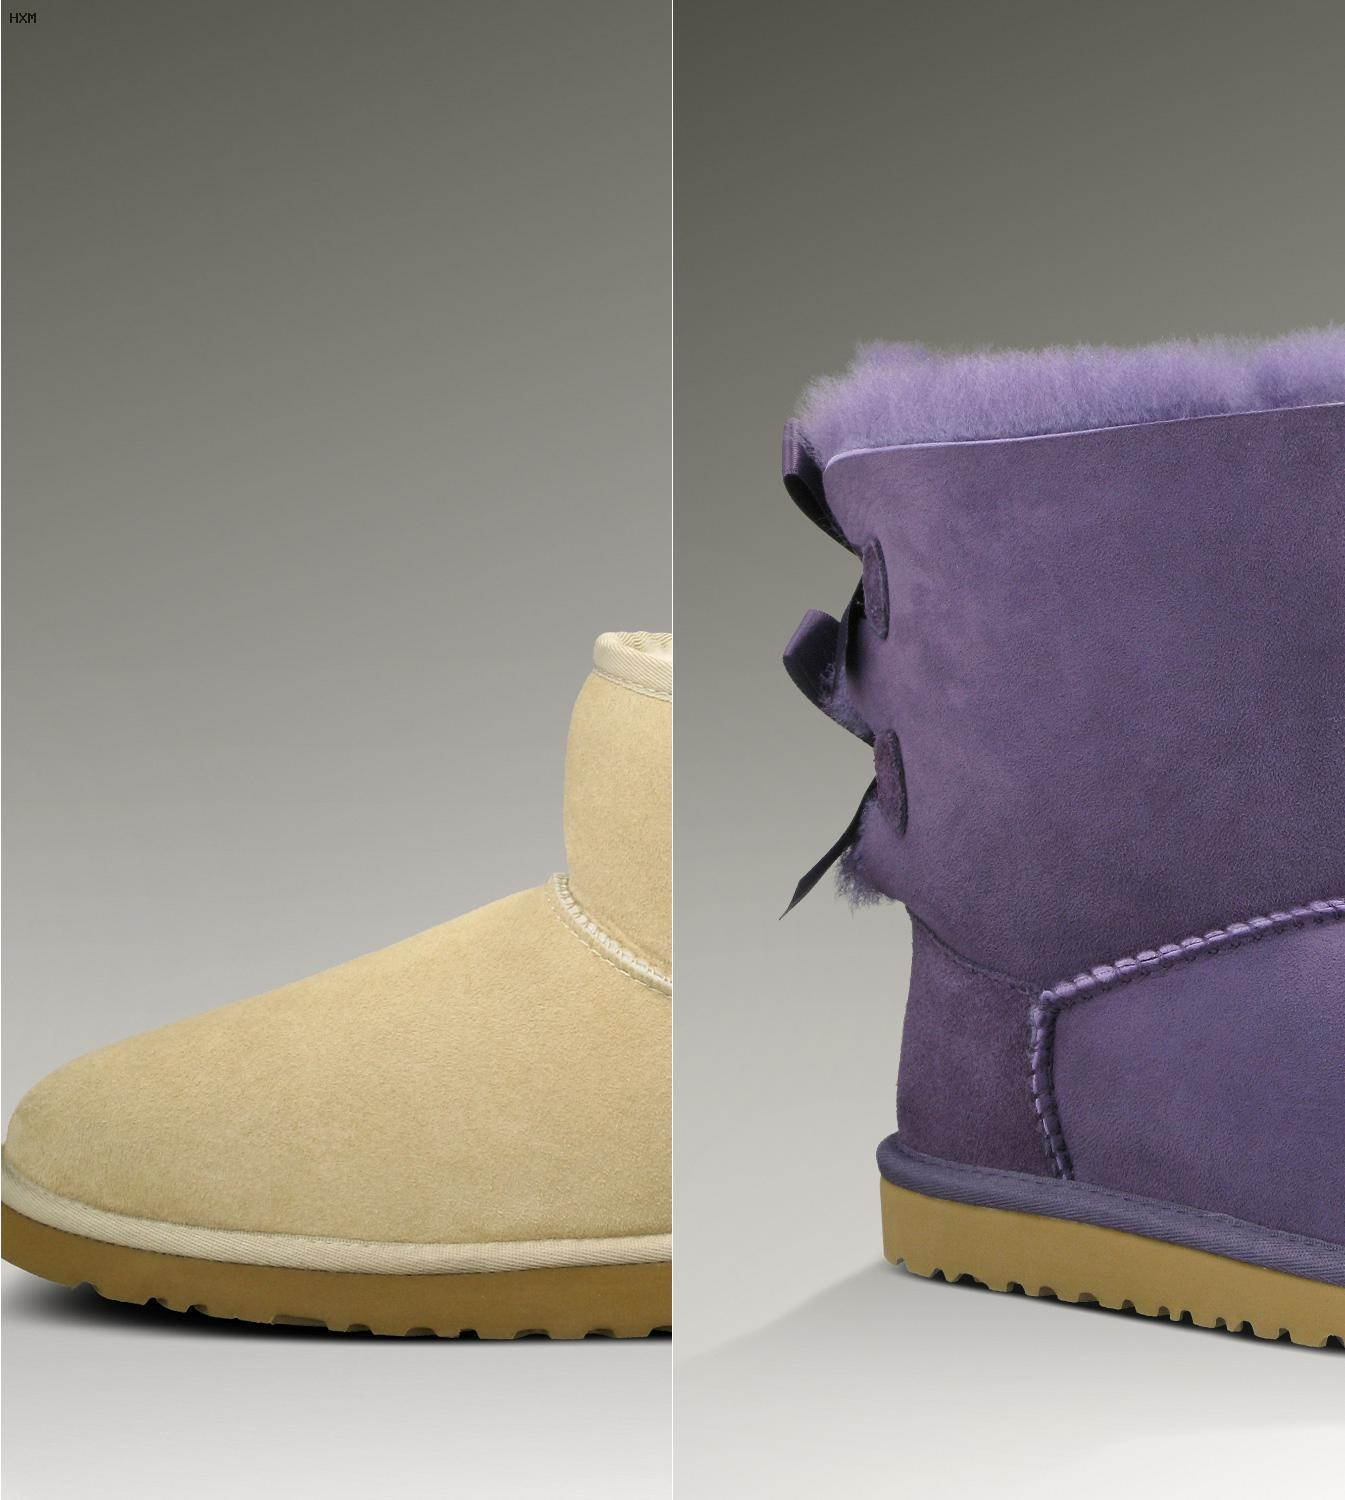 magasin chaussure ugg paris